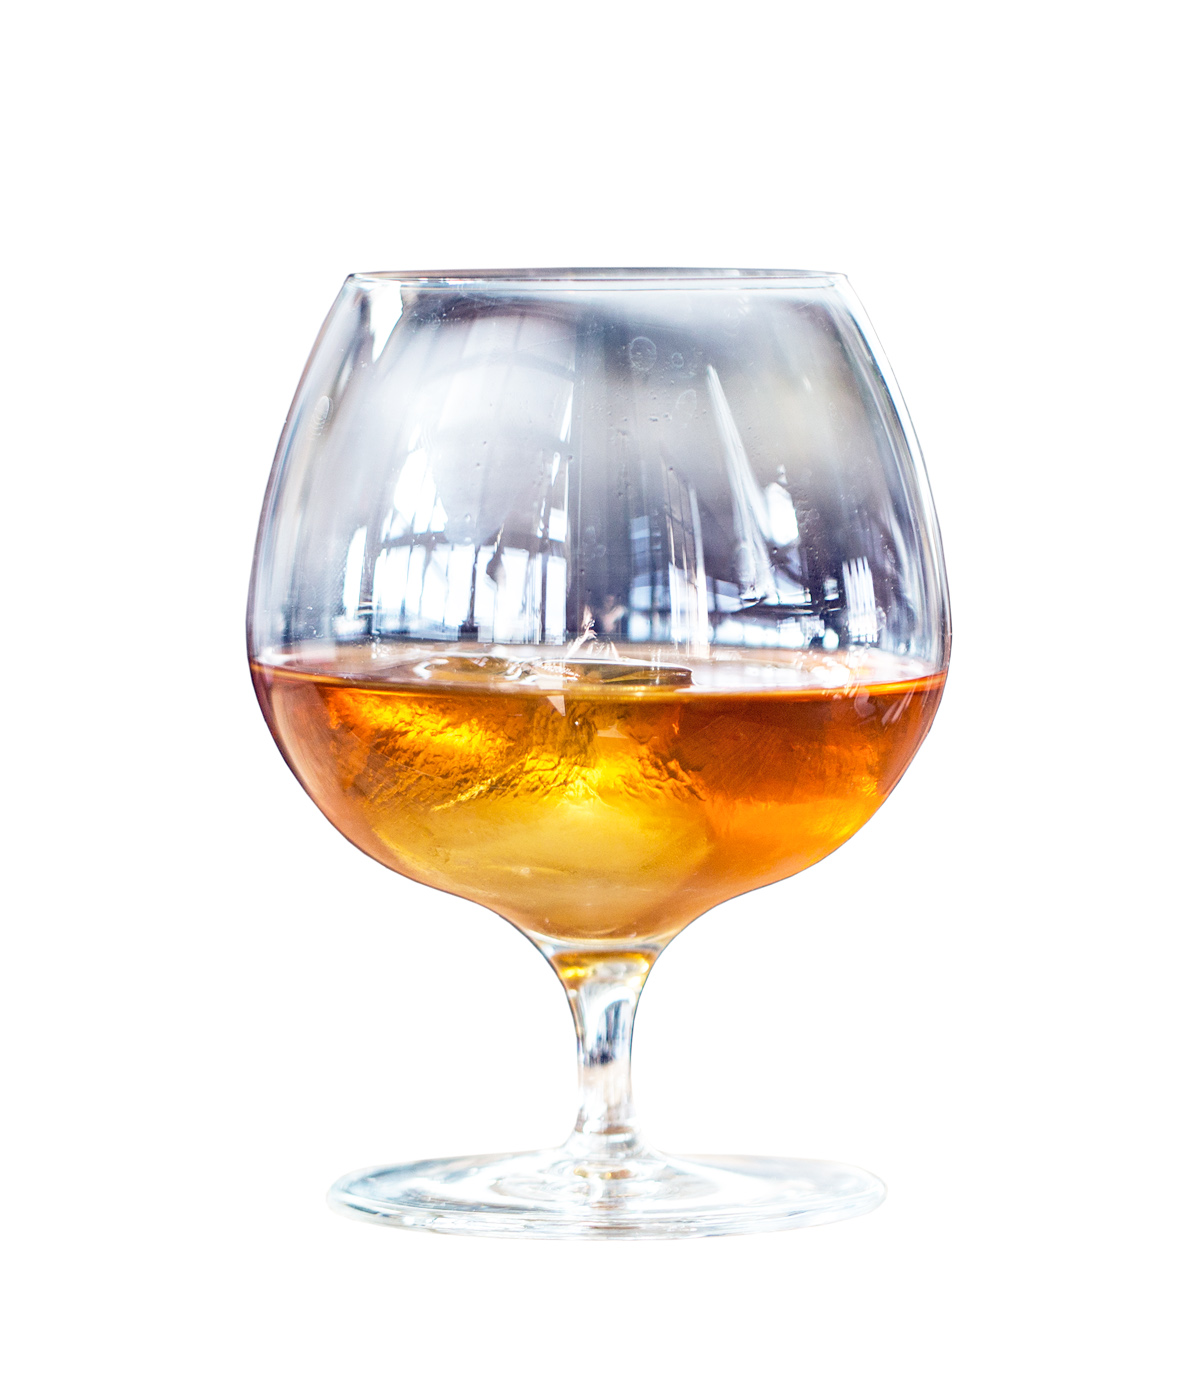 BANAN  3mL Norseman Apricot Liqueur 8mL Norseman Amaro Plantain 20mL Sweet Vermouth 60mL Norseman Pineapple Rum  Stir on ice and strain into a snifter glass. Float one large ice cube in glass.